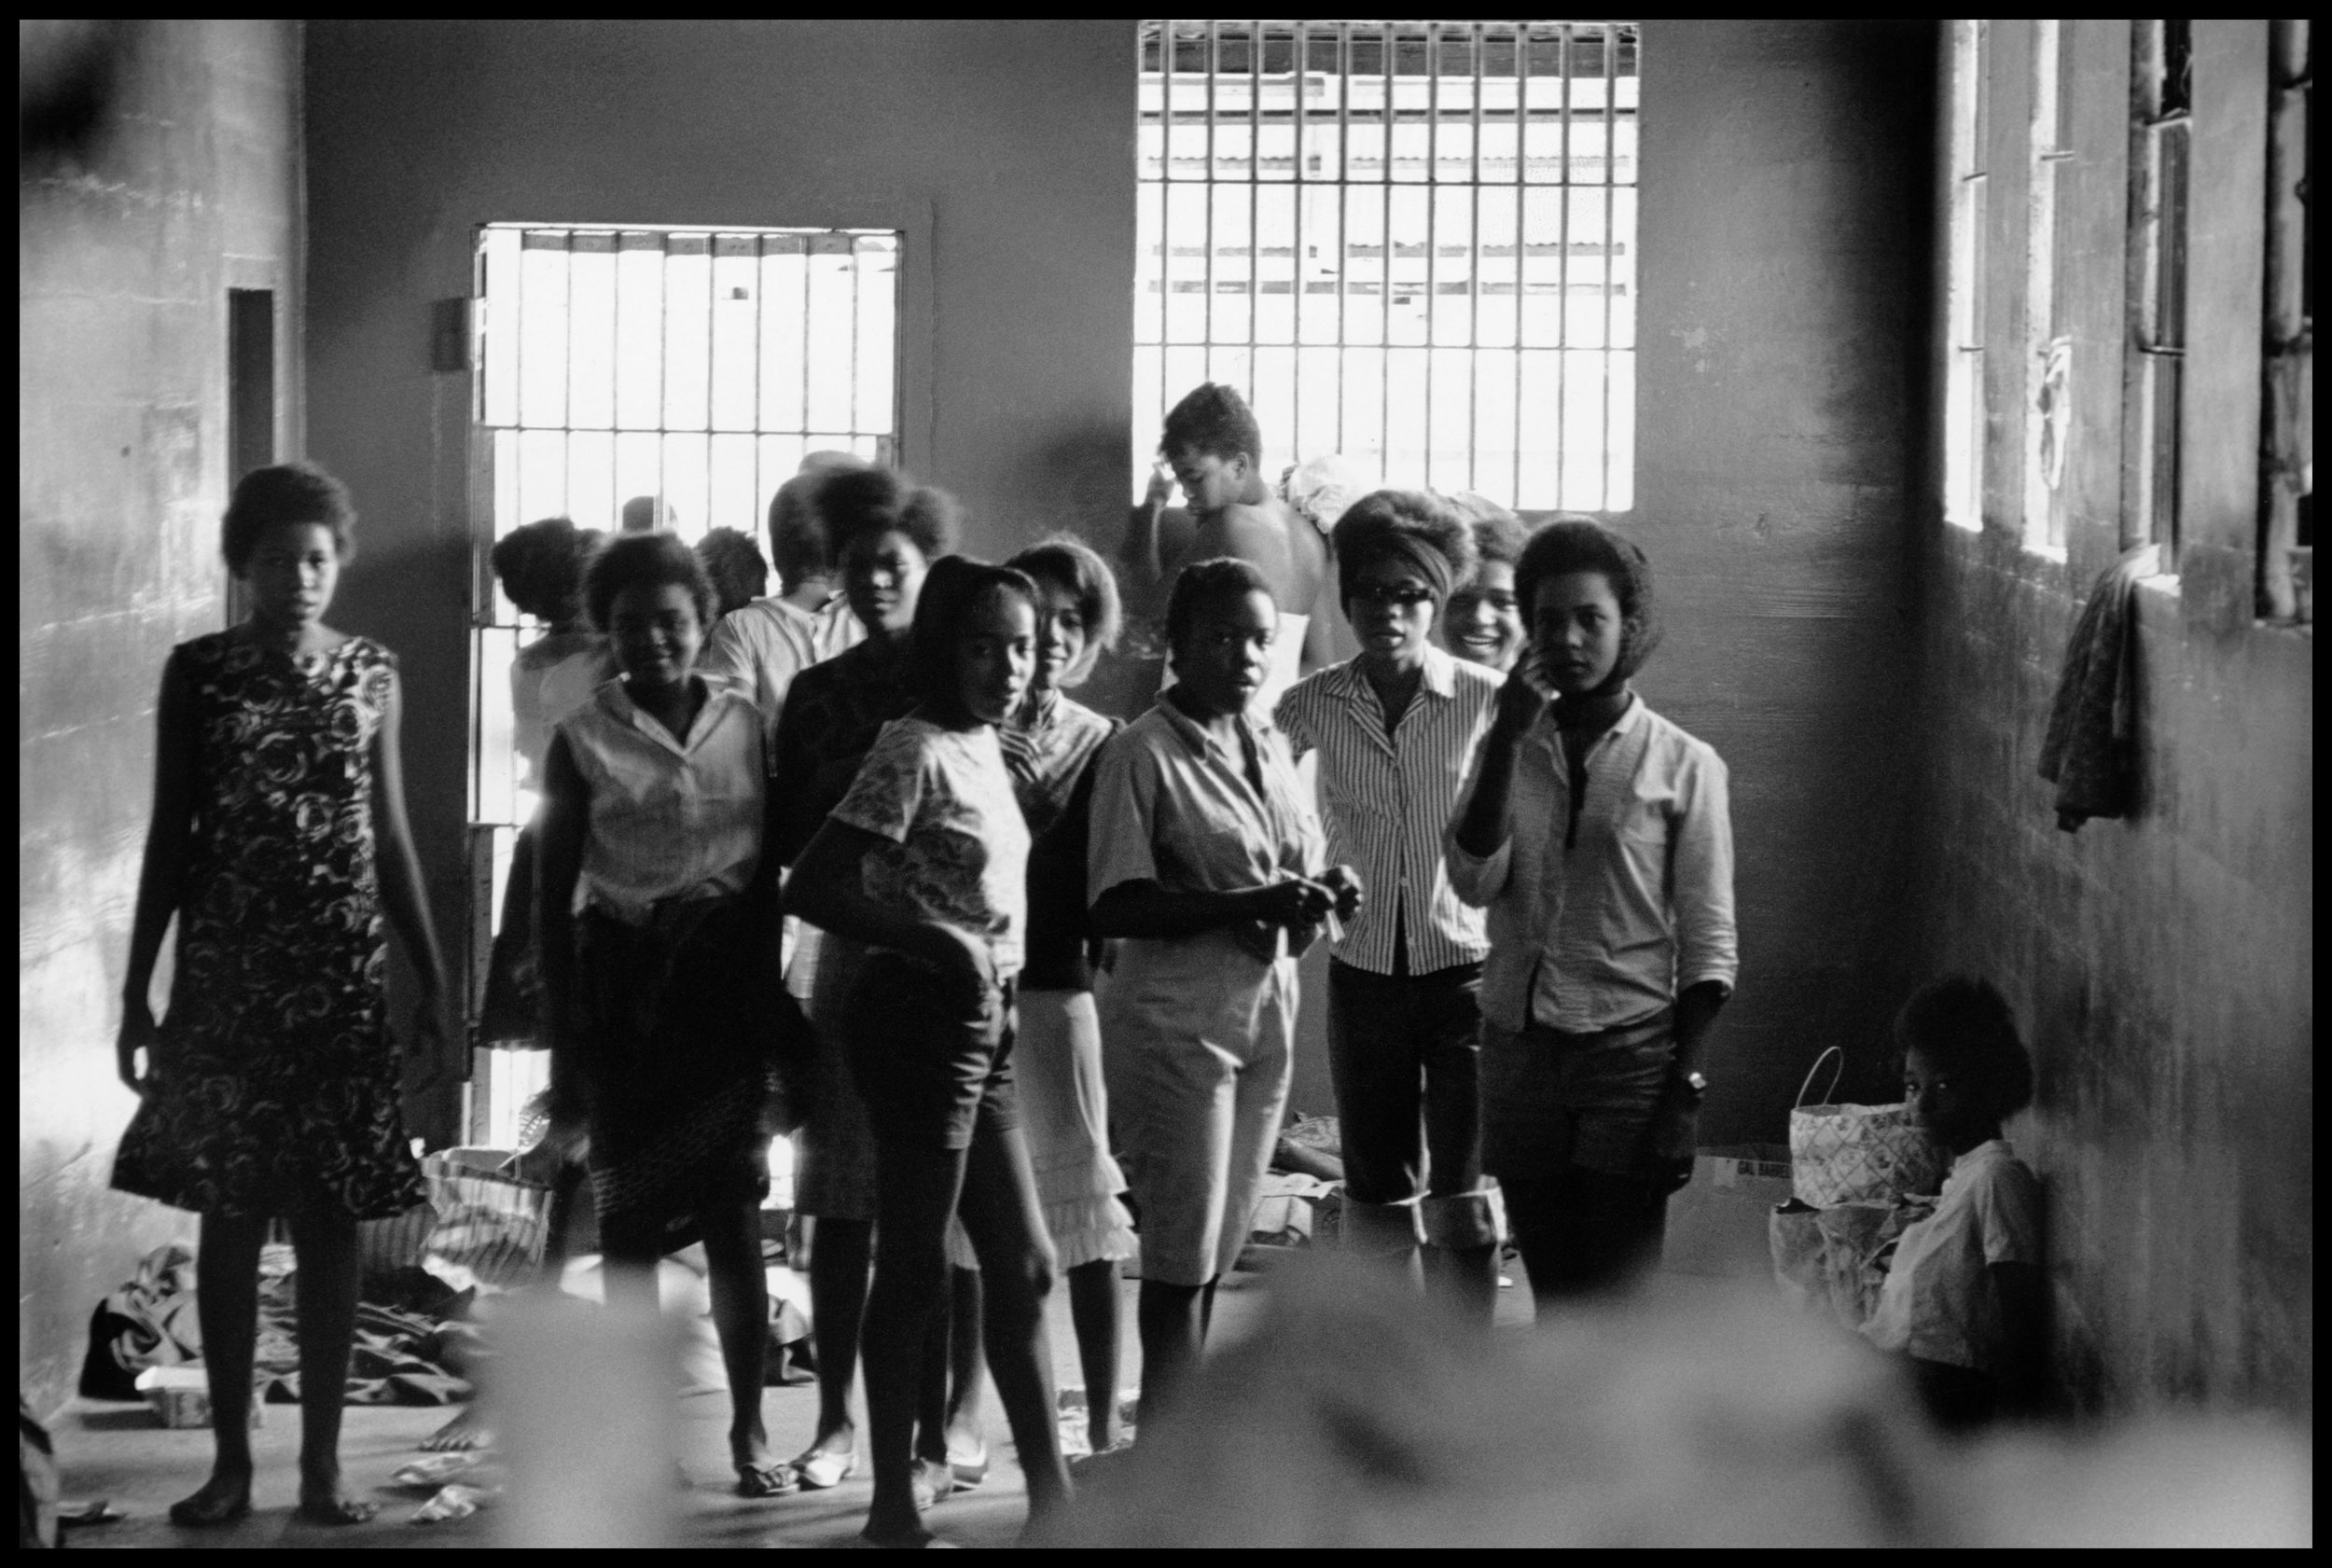 (Women held in prison without charges in Leesburg, Georgia, in 1963. (© Danny Lyon, New York & Magnum Photos, New York / Courtesy Edwynn Houk Gallery, New York.)   A photo in the exhibit Danny Lyon: Memories of the Southern Civil Rights Movement at  Hofstra Museum  perfectly captures the best element of that cause.  READ MORE